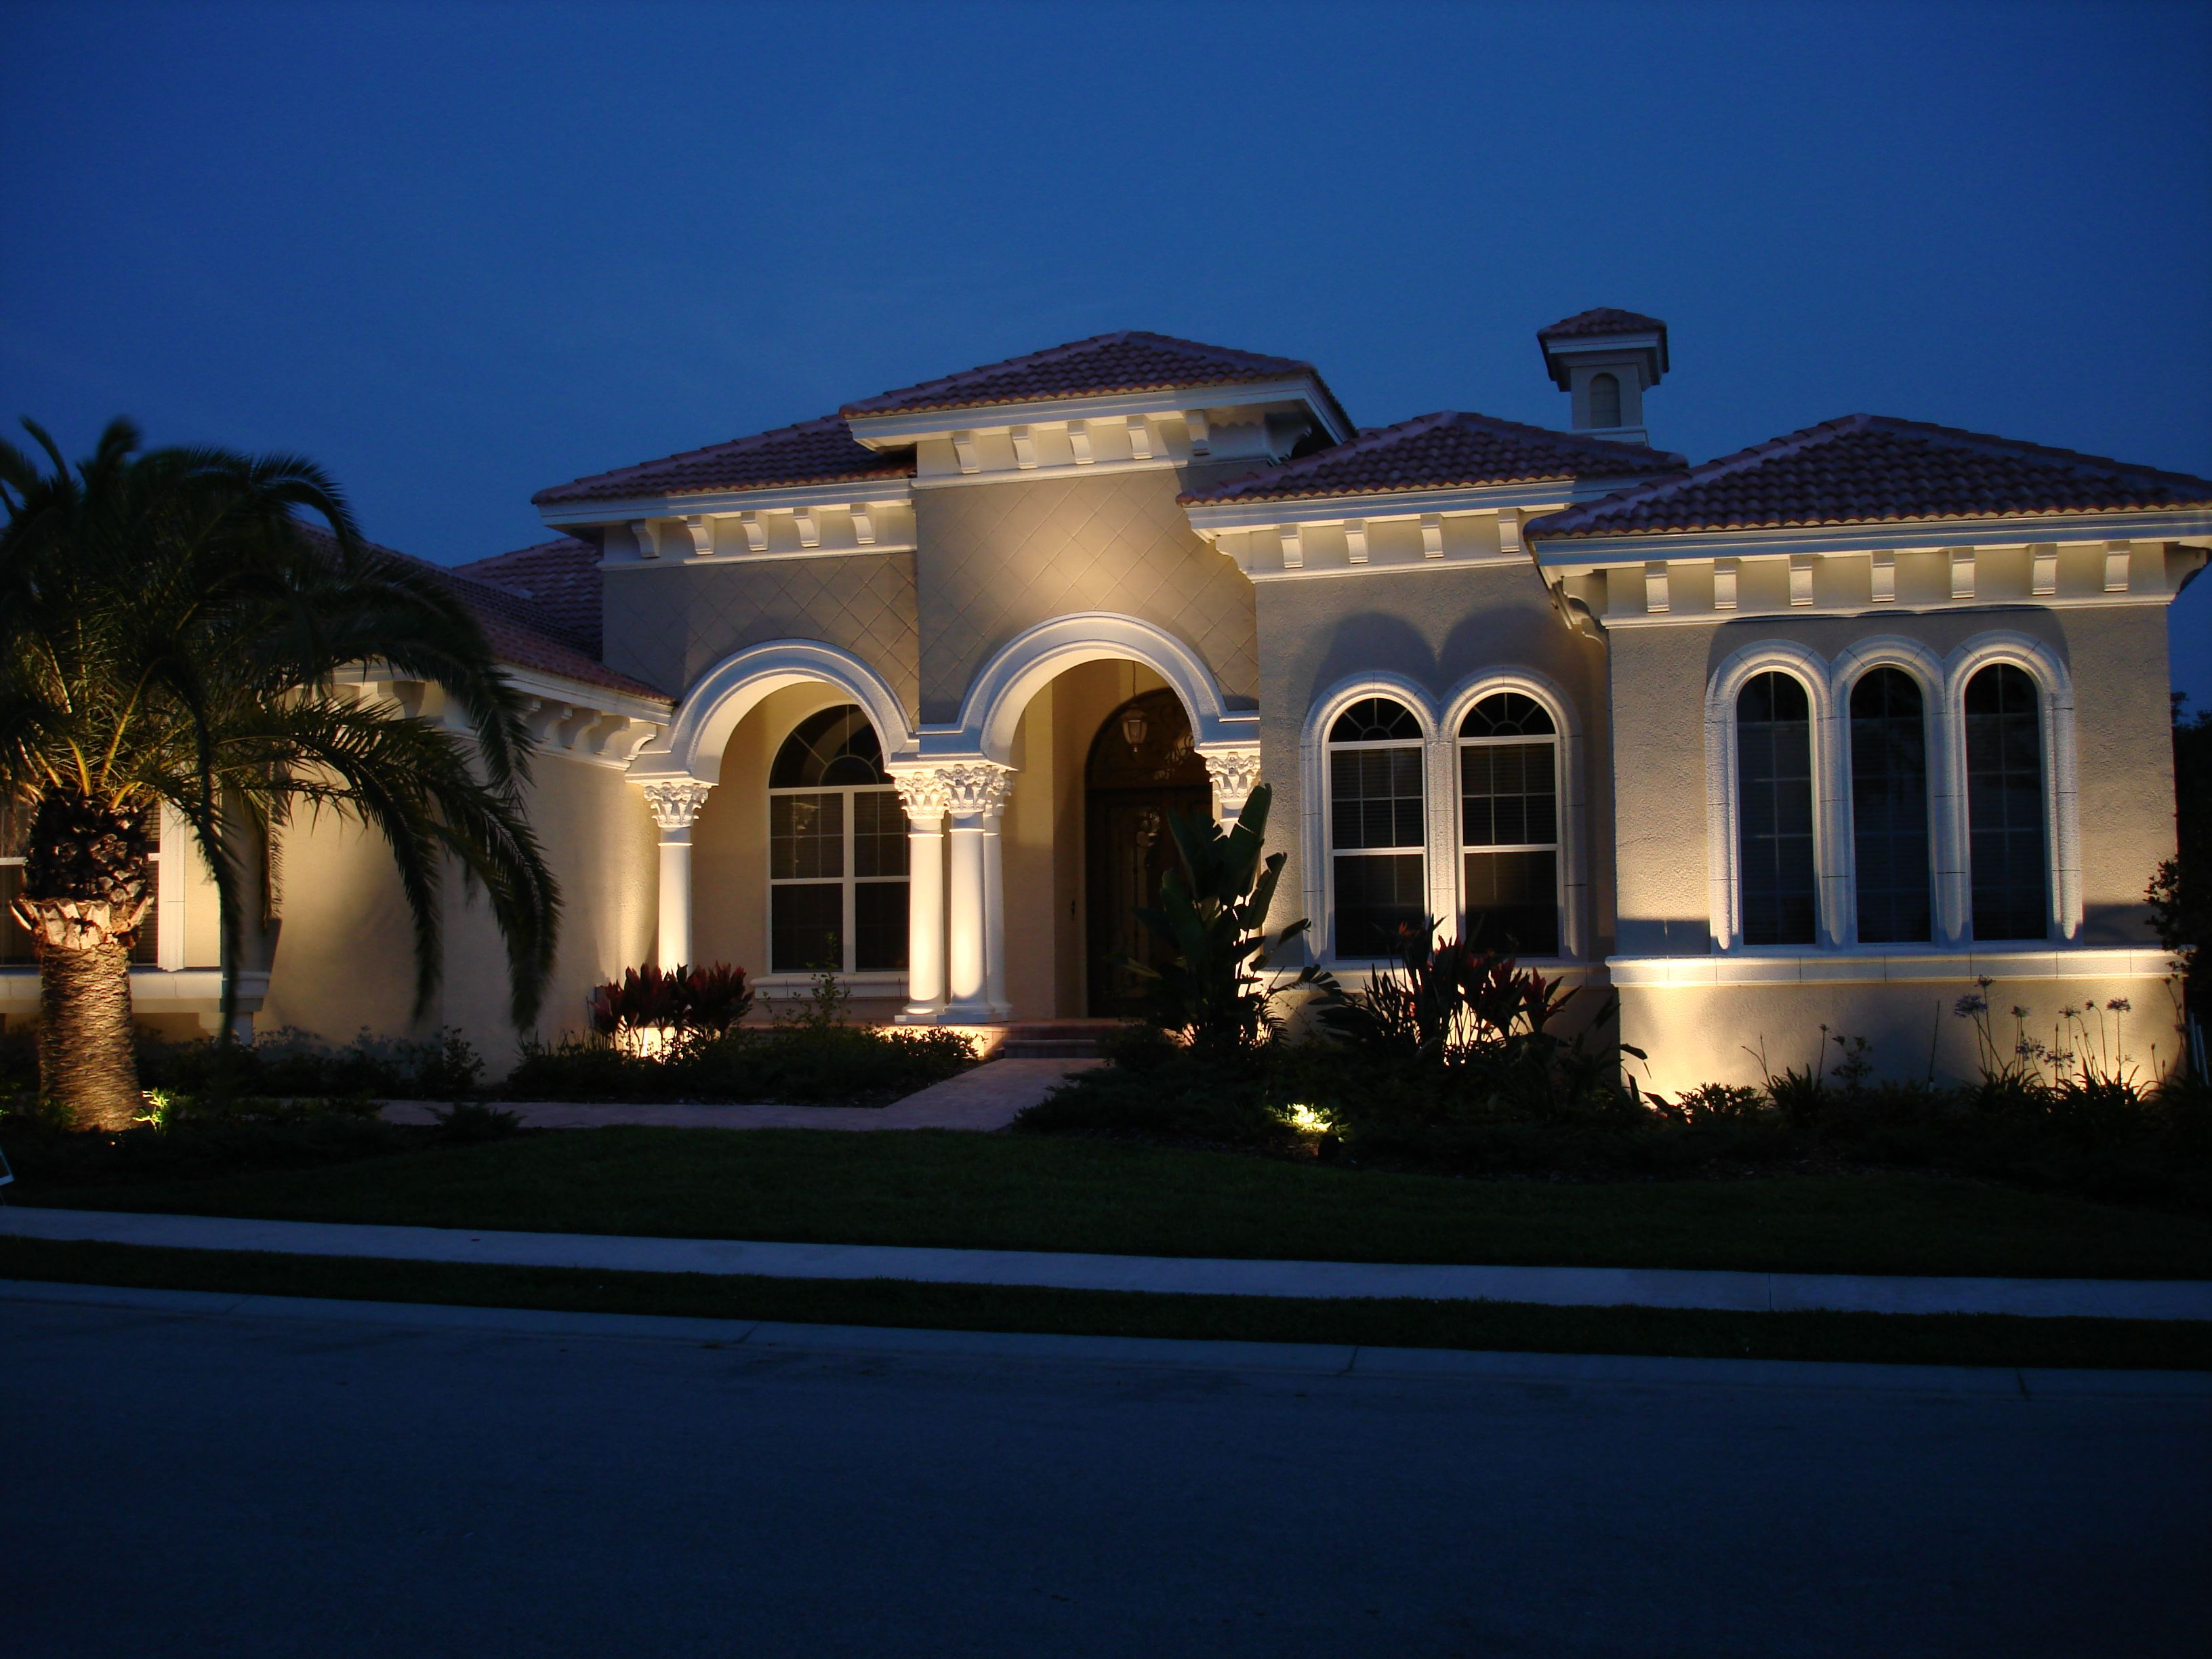 lighting | Outdoor Lighting Tampa | Nighttime Lighting Design ...